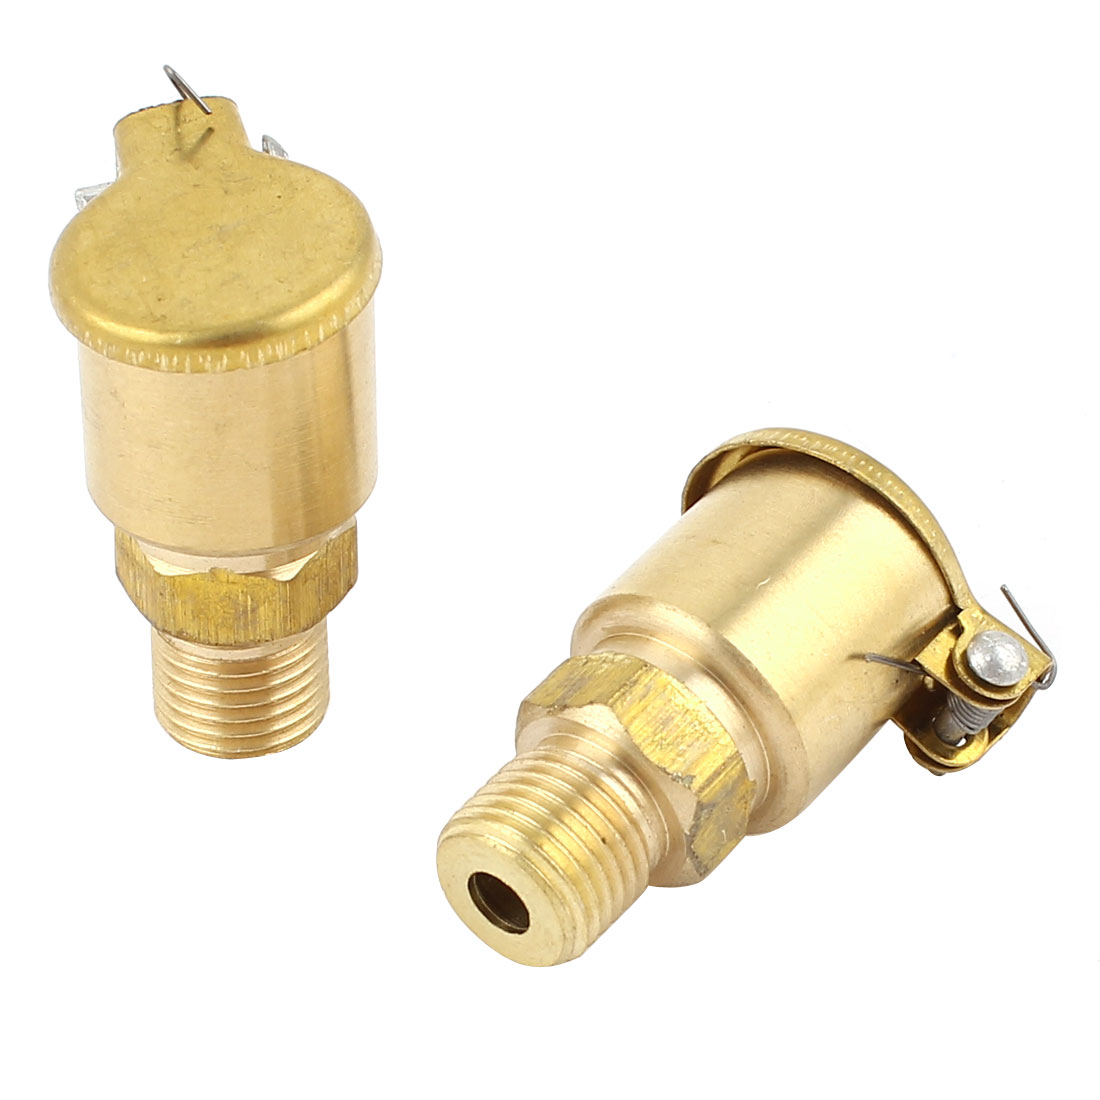 2 Pcs M10 Male Thread 1.5cm Dia Brass Spring Cover Cap Grease Lubricating Oil Cup